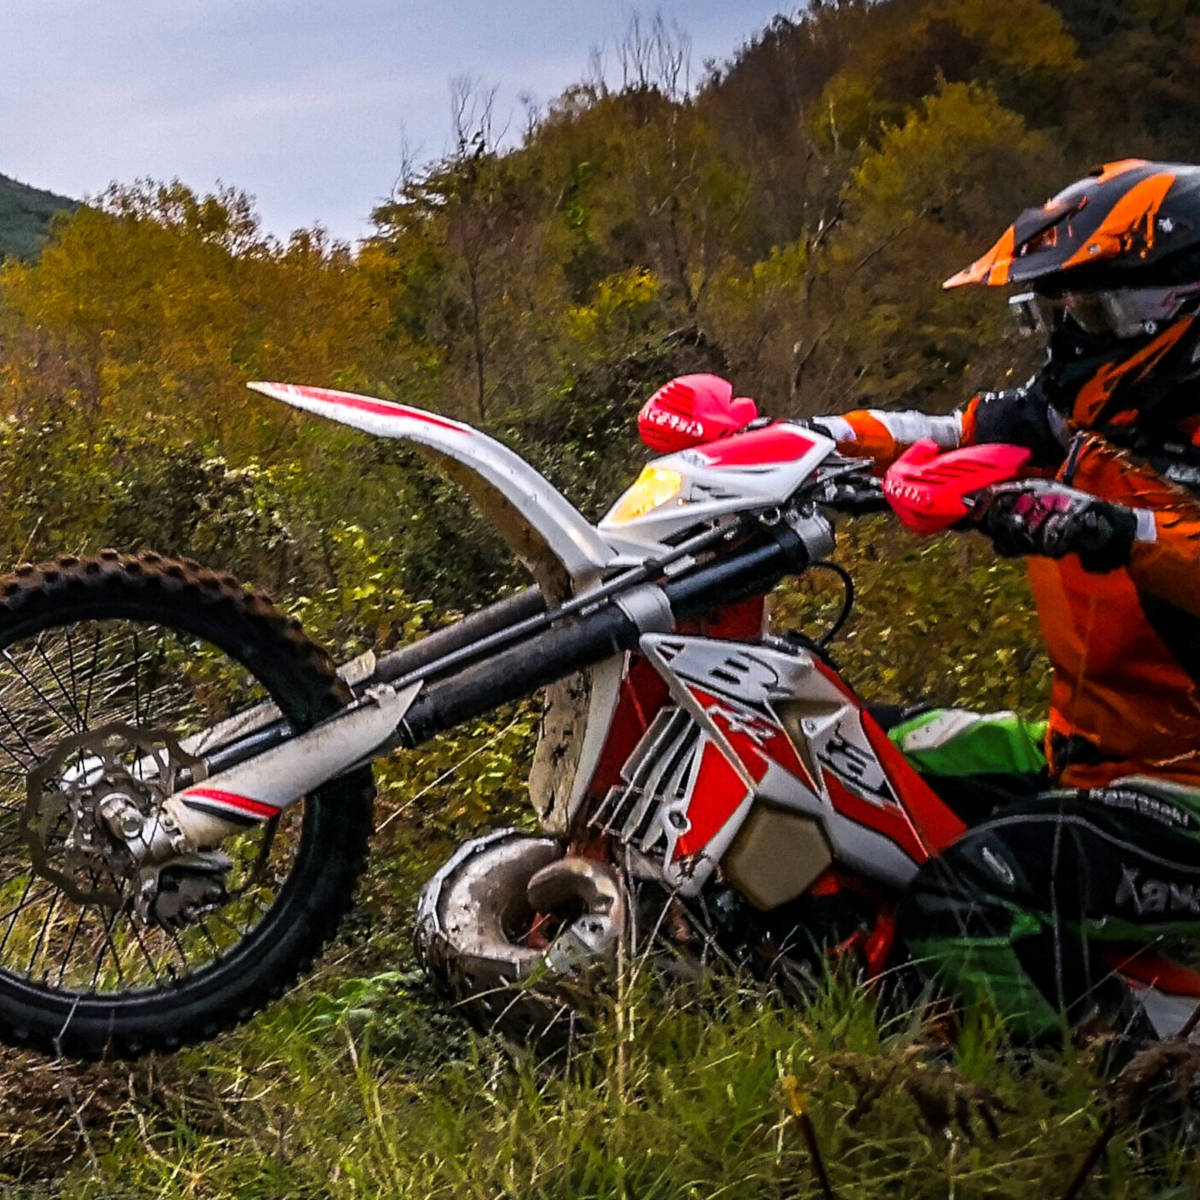 Offroad Bike Services: Preparation, servicing and repair for all off-road motorcycles, whether 2 stroke or 4 stroke.  Servicing, repairs and tuning.